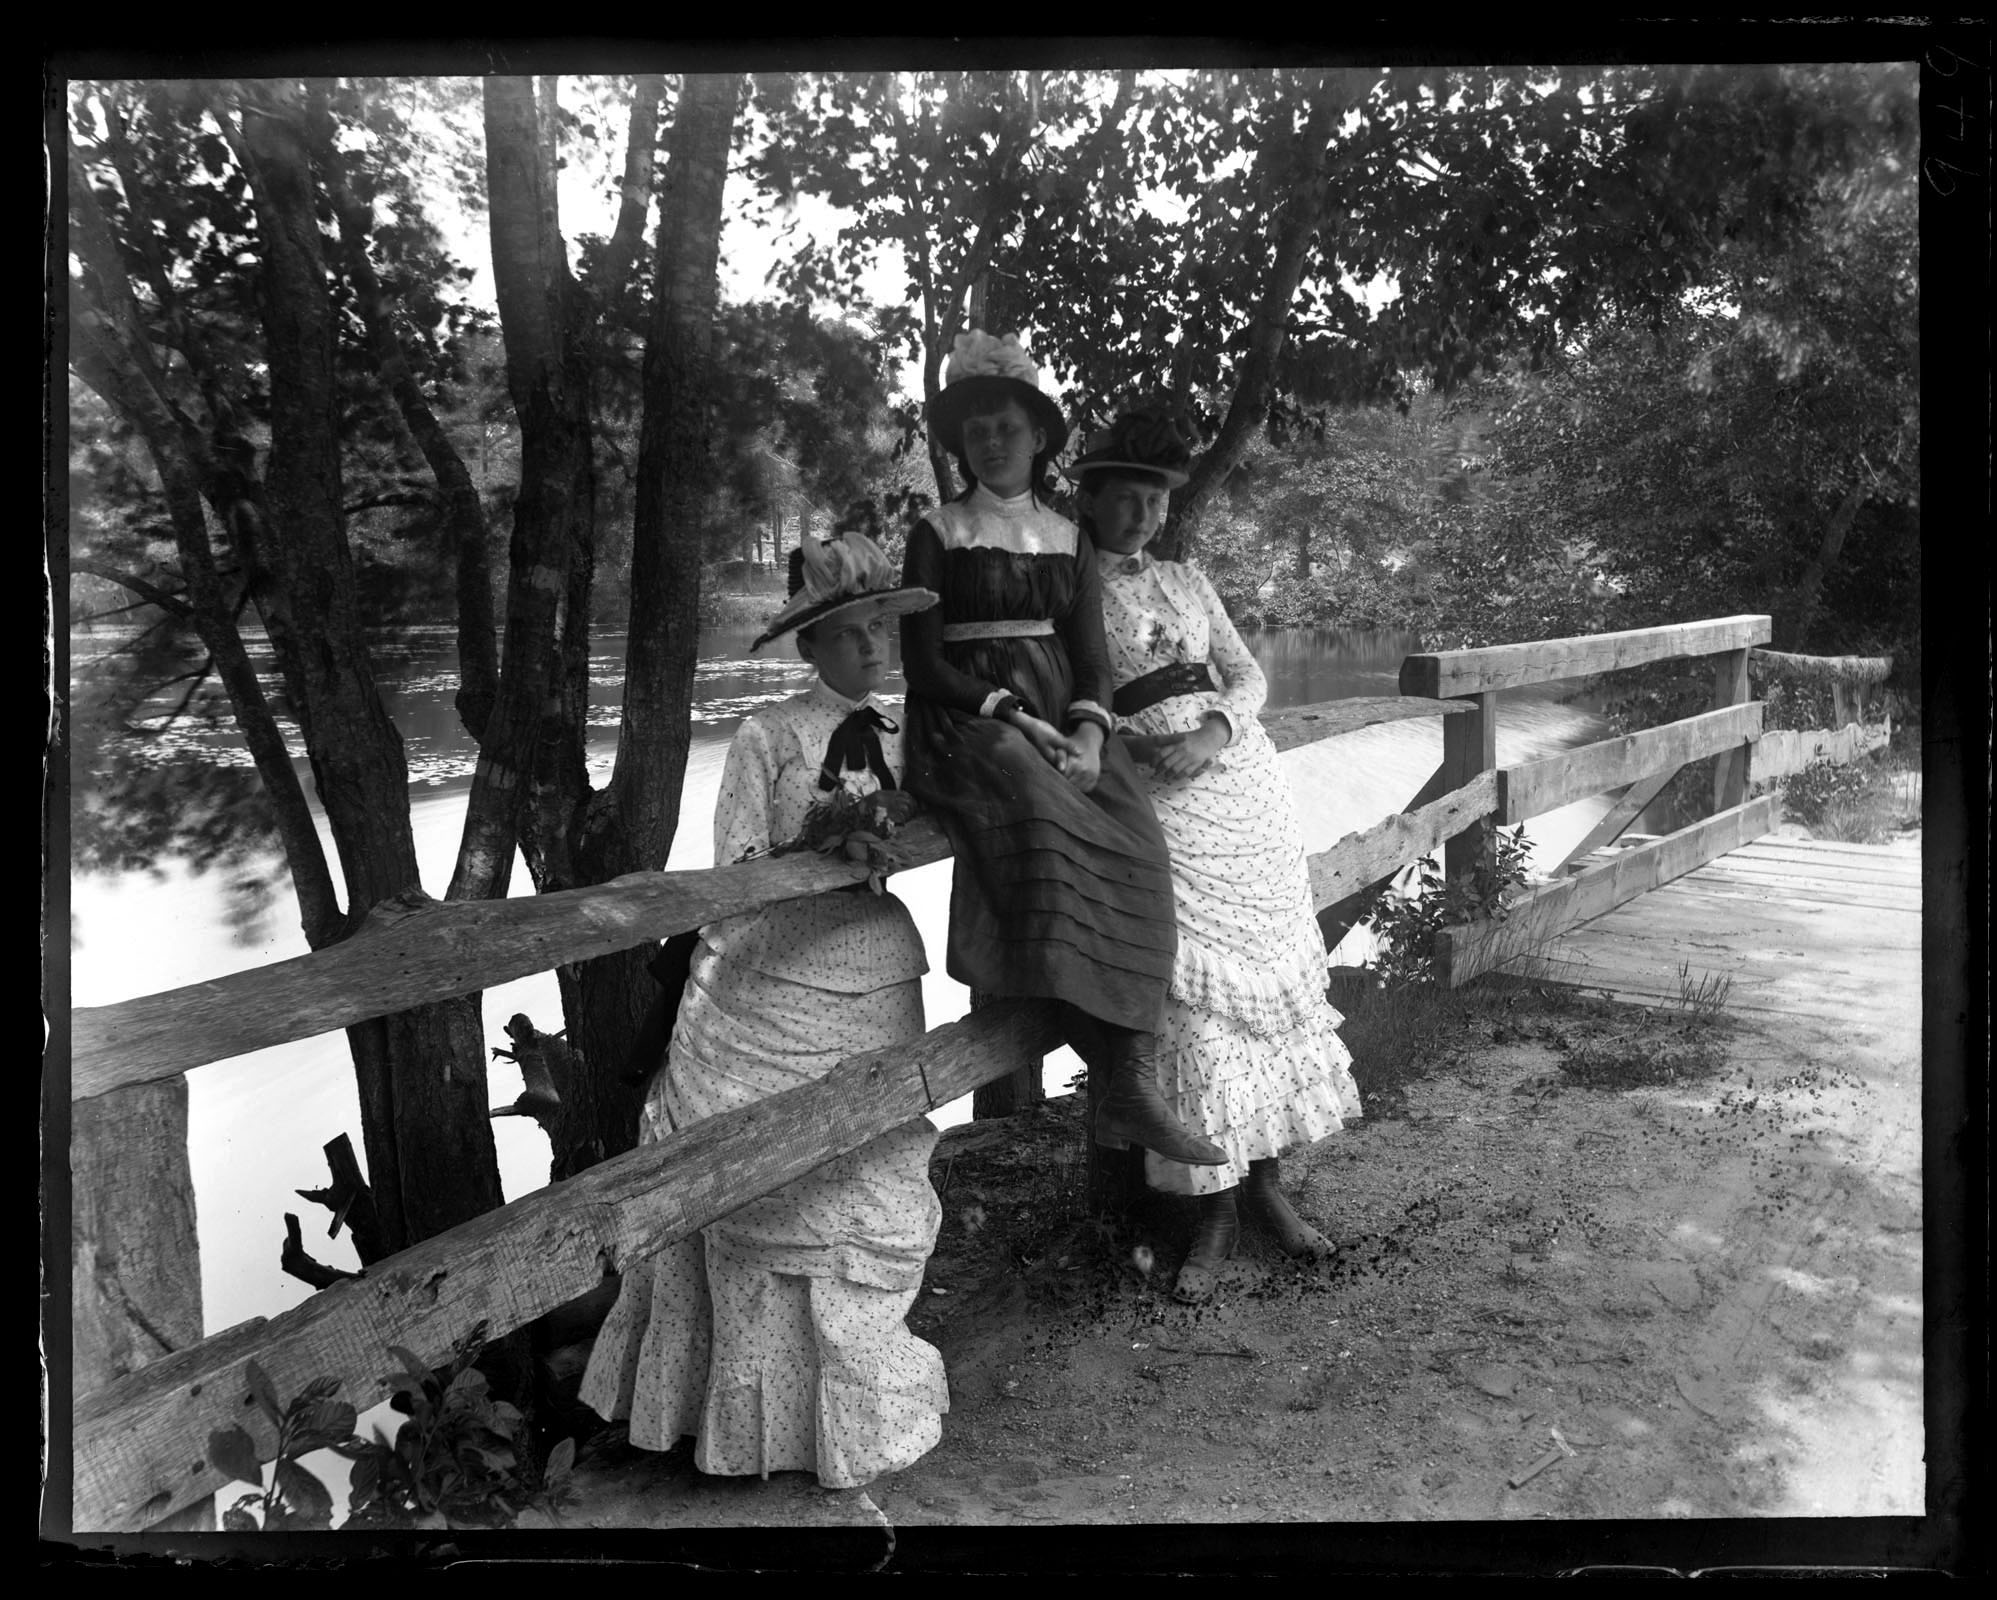 Marriott Canby Morris. Bella & Edith Wistar & B[ess] C. M[orris] by Fence in Front of Mill. [Sea Girt, NJ], 1886. Glass negative. Marriott C. Morris Collection. [P.9895.949]